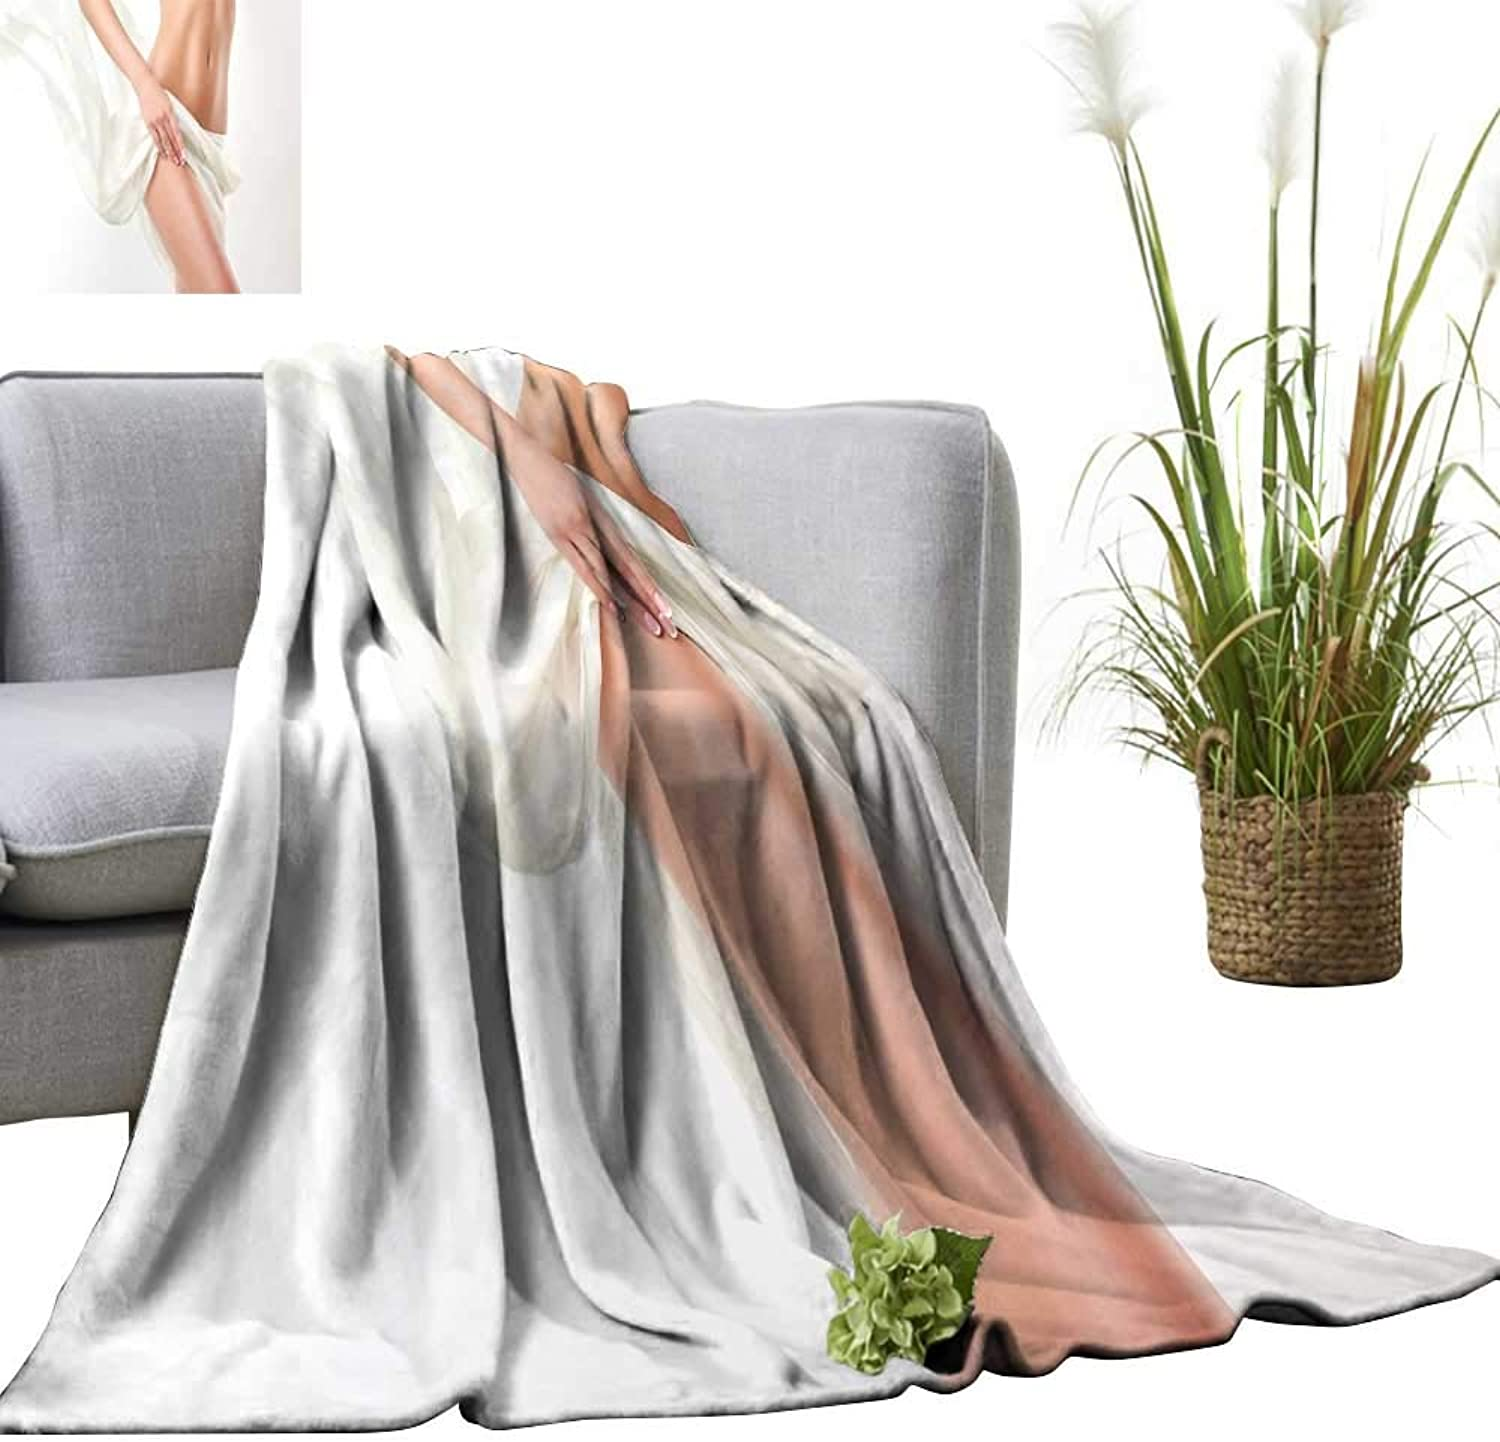 YOYI Baby Blanket Perfect Slim Tone Young Body The Girl examplae Sports Indoor Outdoor, Comfortable for All Seasons 60 x70